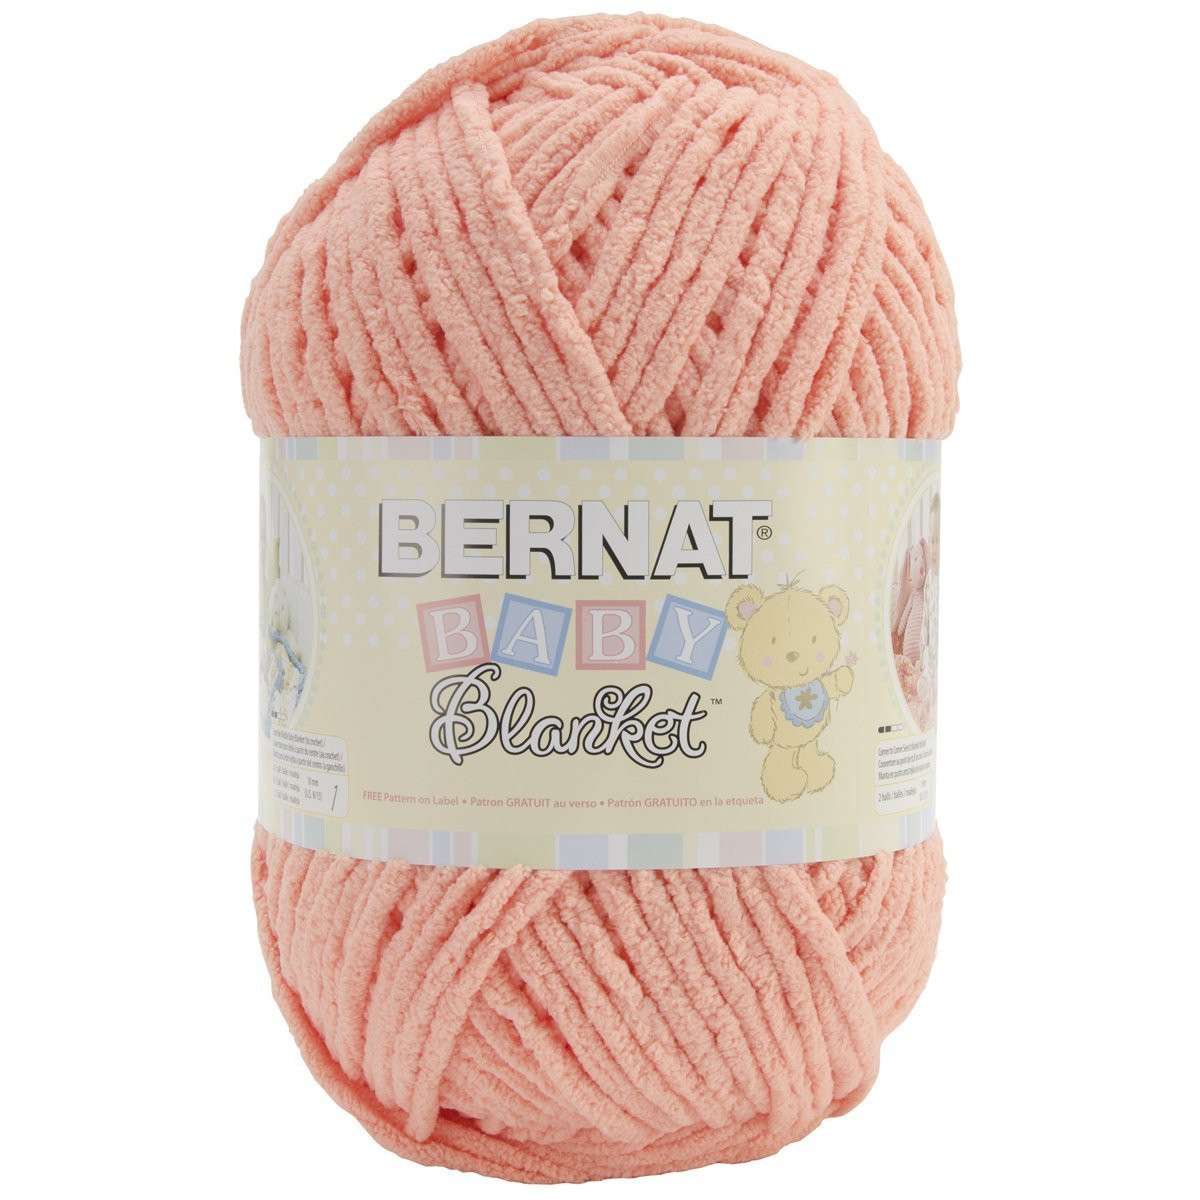 Bernat Baby Blanket Yarn New Bernat Baby Blanket Yarn In Baby Peach 300 Gram Skein Of Delightful 42 Models Bernat Baby Blanket Yarn